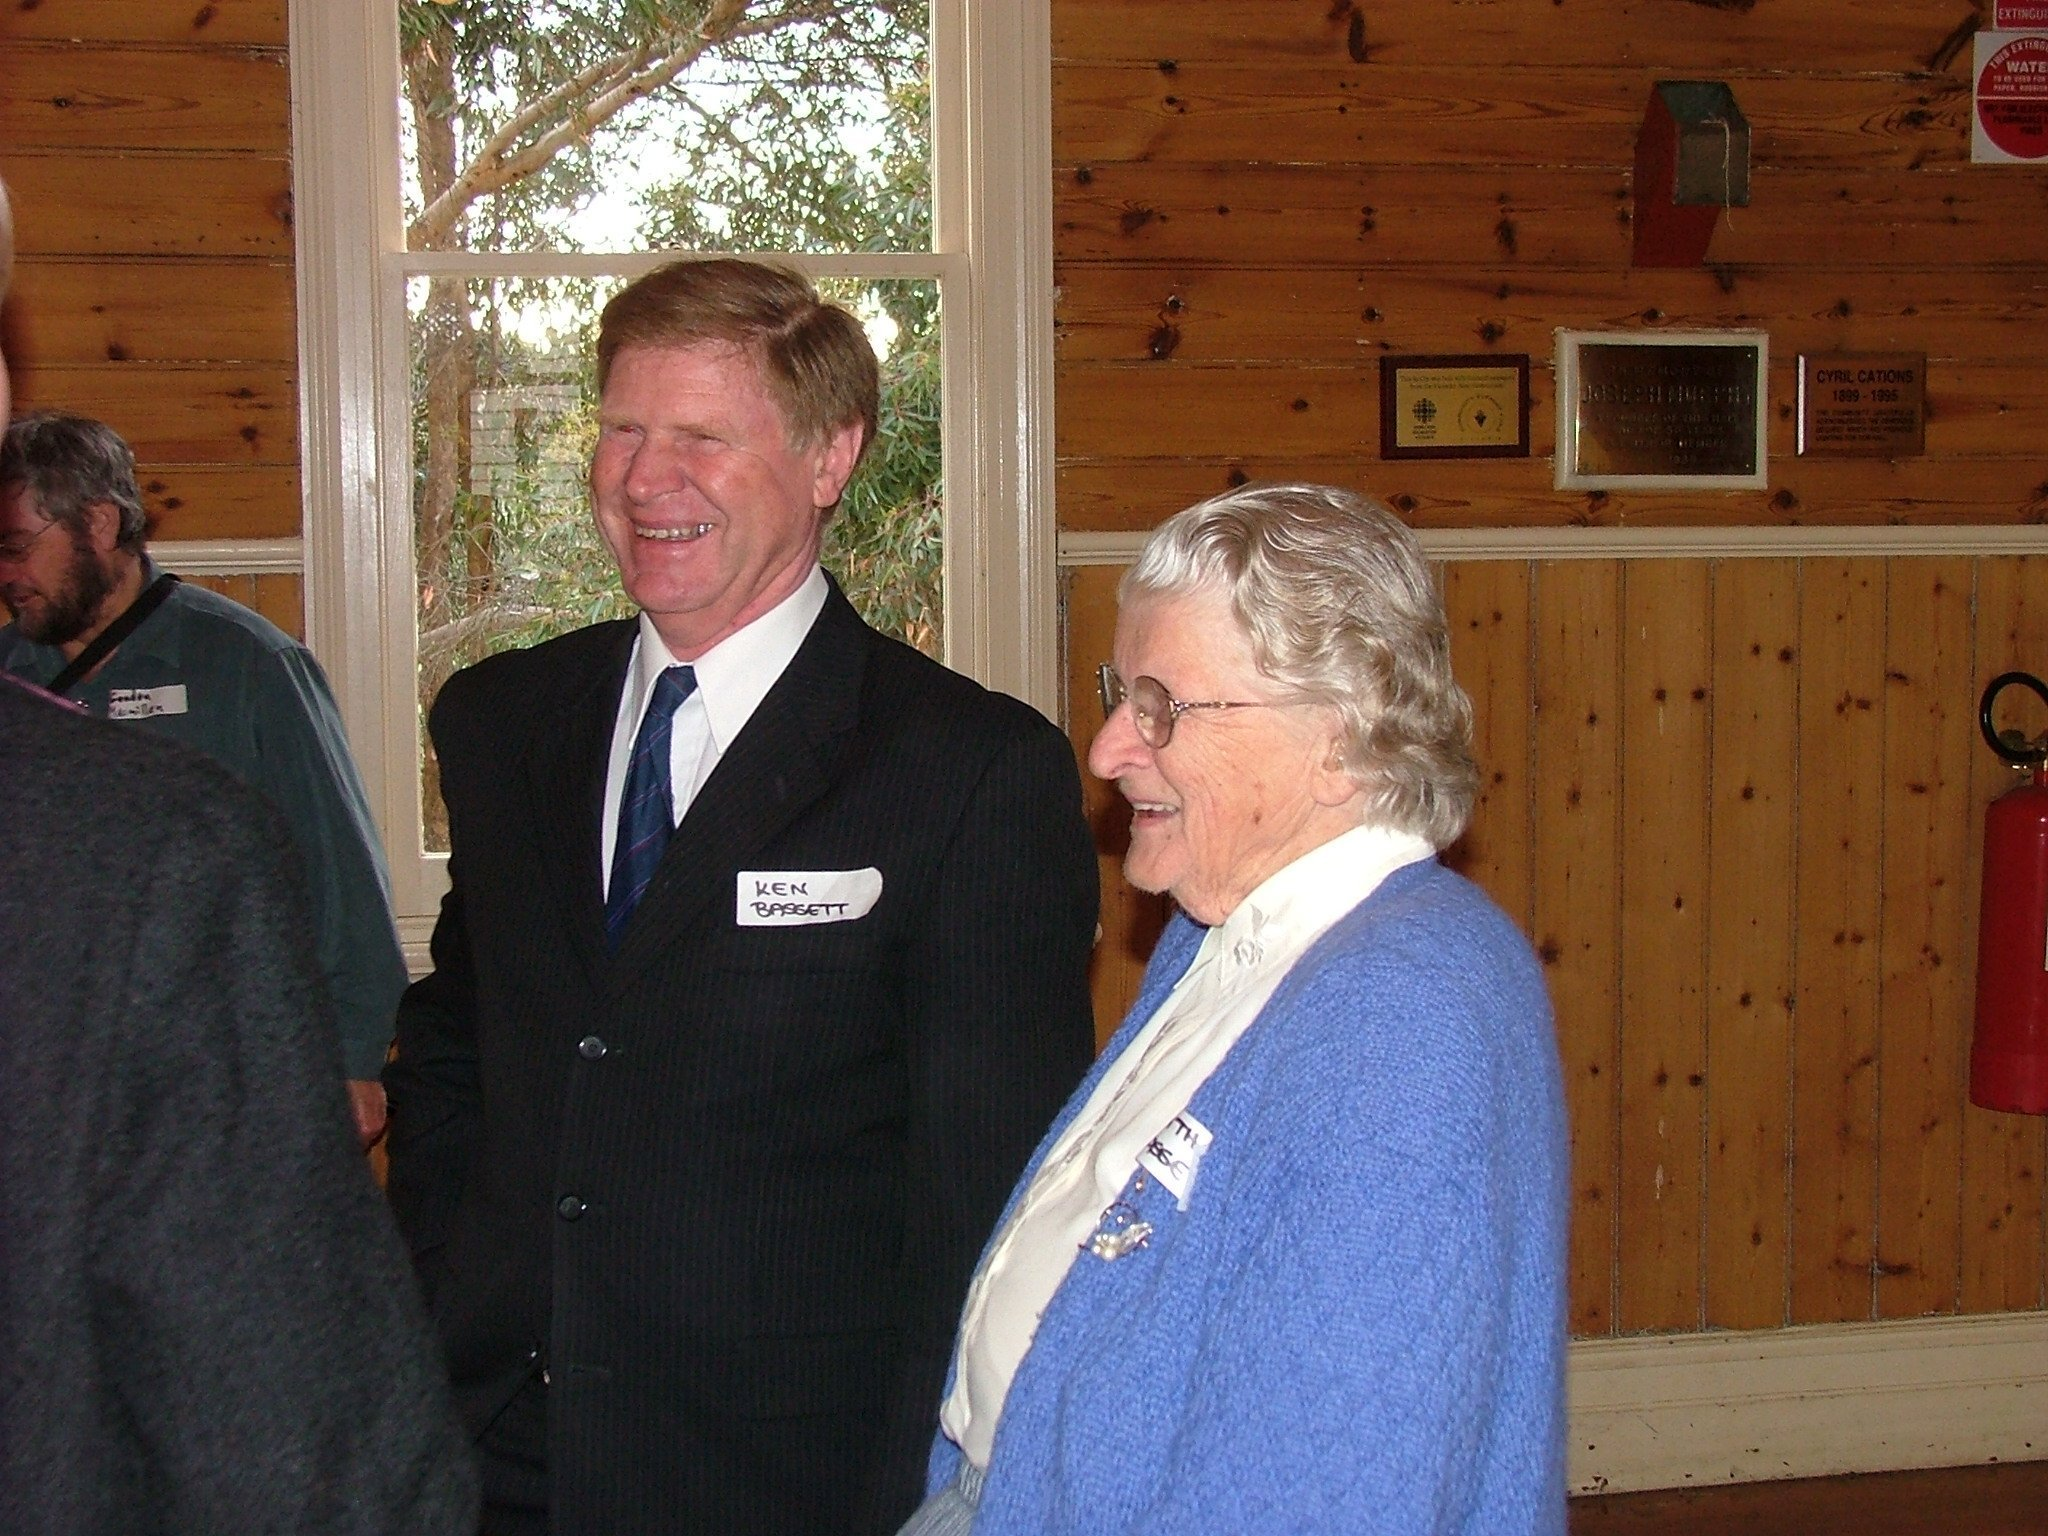 Kathleen Bassett of 'Tregowan' and her son Ken Bassett pictured at the Arthurs Creek Mechanics Institute History Day and Plaque Unveiling Ceremony on the 11th September, 2005.  Kathleen Bassett presented, on behalf of the entire family, two very fine items of district cricket memorabilia held for many years.  Photo credit Neil Brock